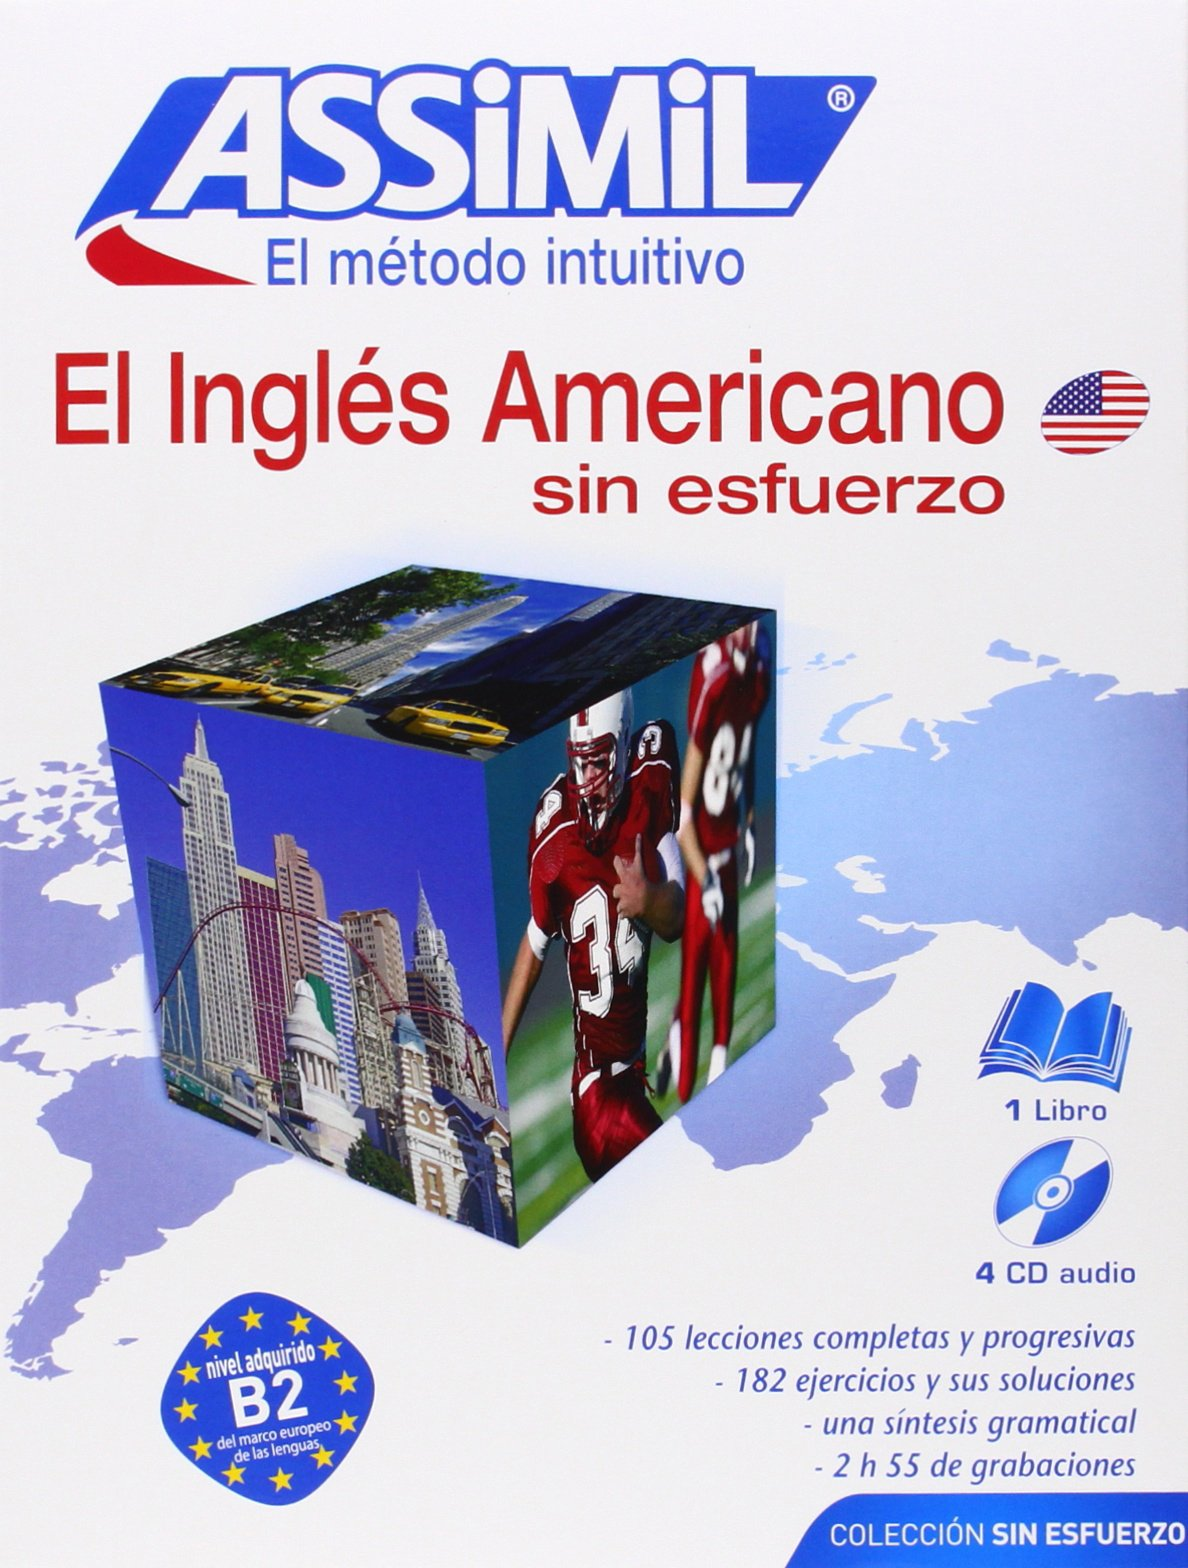 El Ingles Americano Sin Esfuerzo [With 4 CD's] (Assimil)